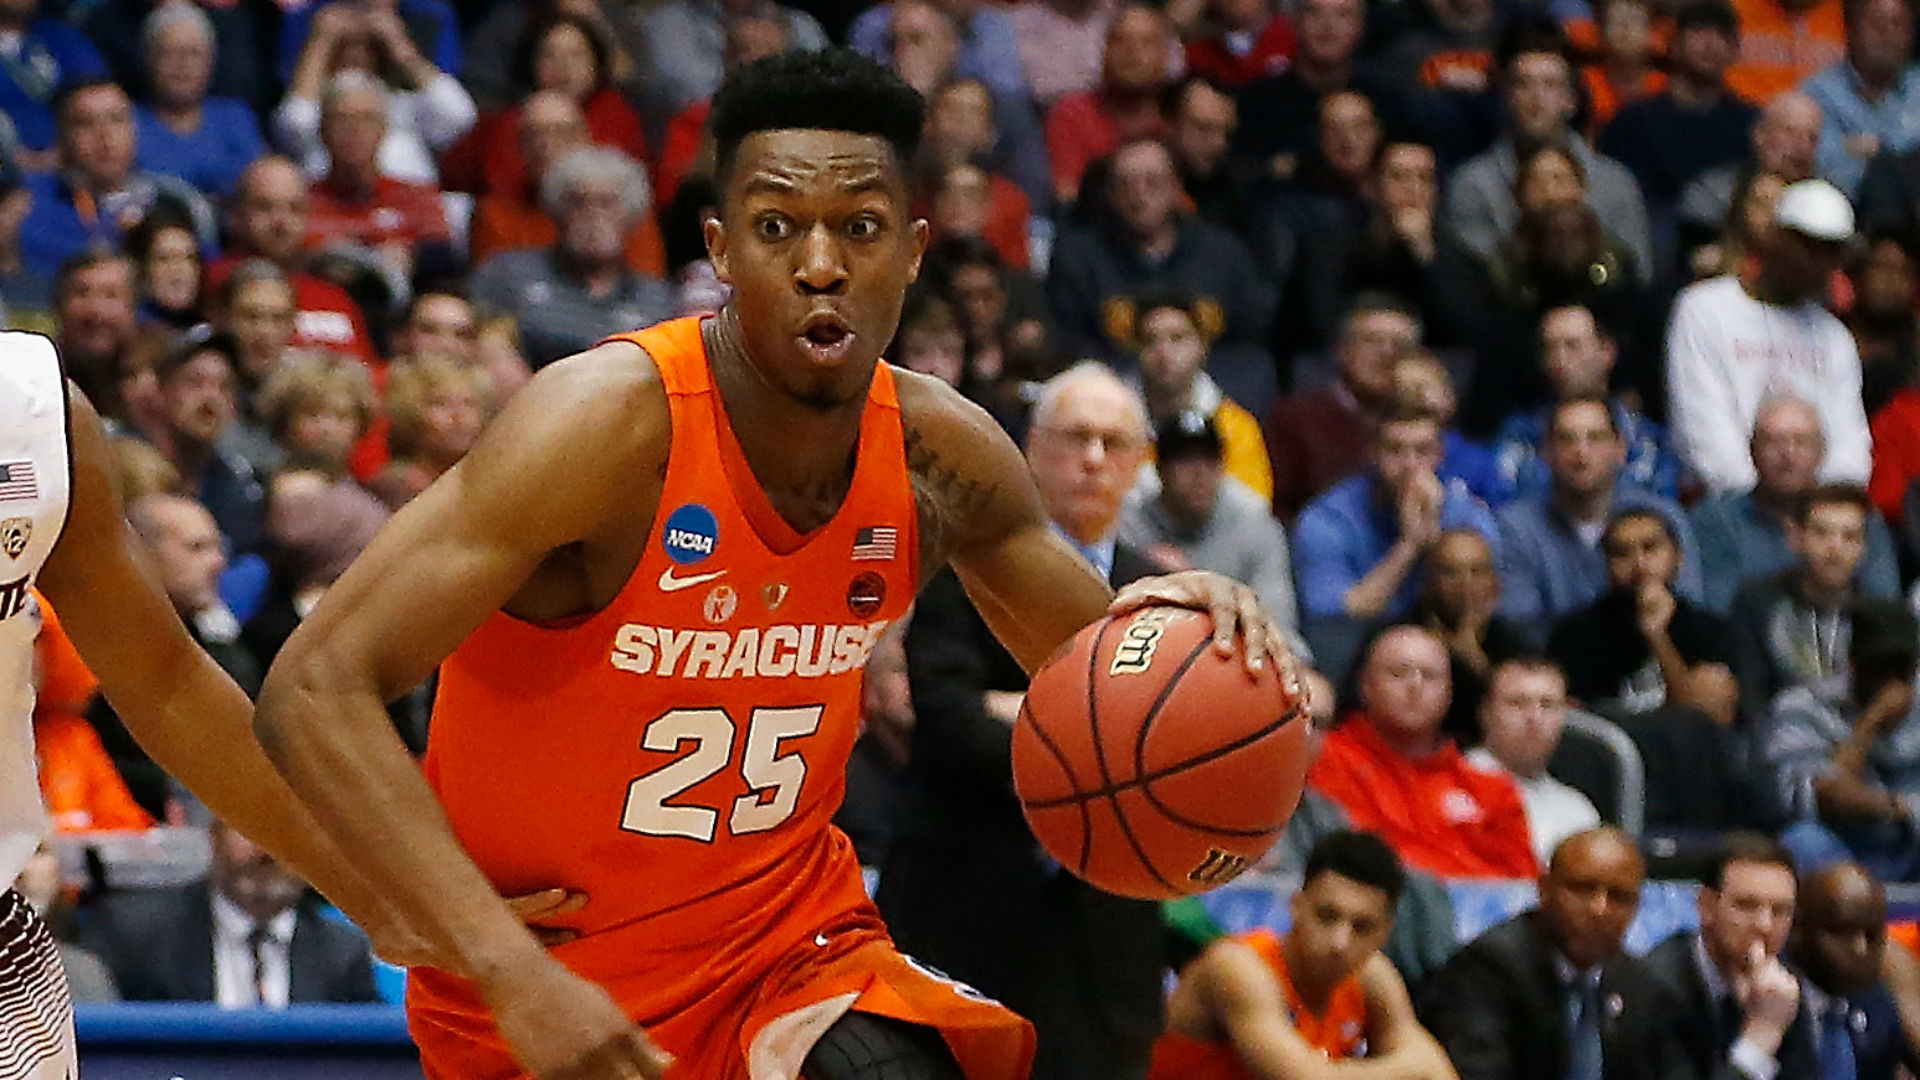 Arizona State vs Syracuse Betting Odds — March Madness Recap